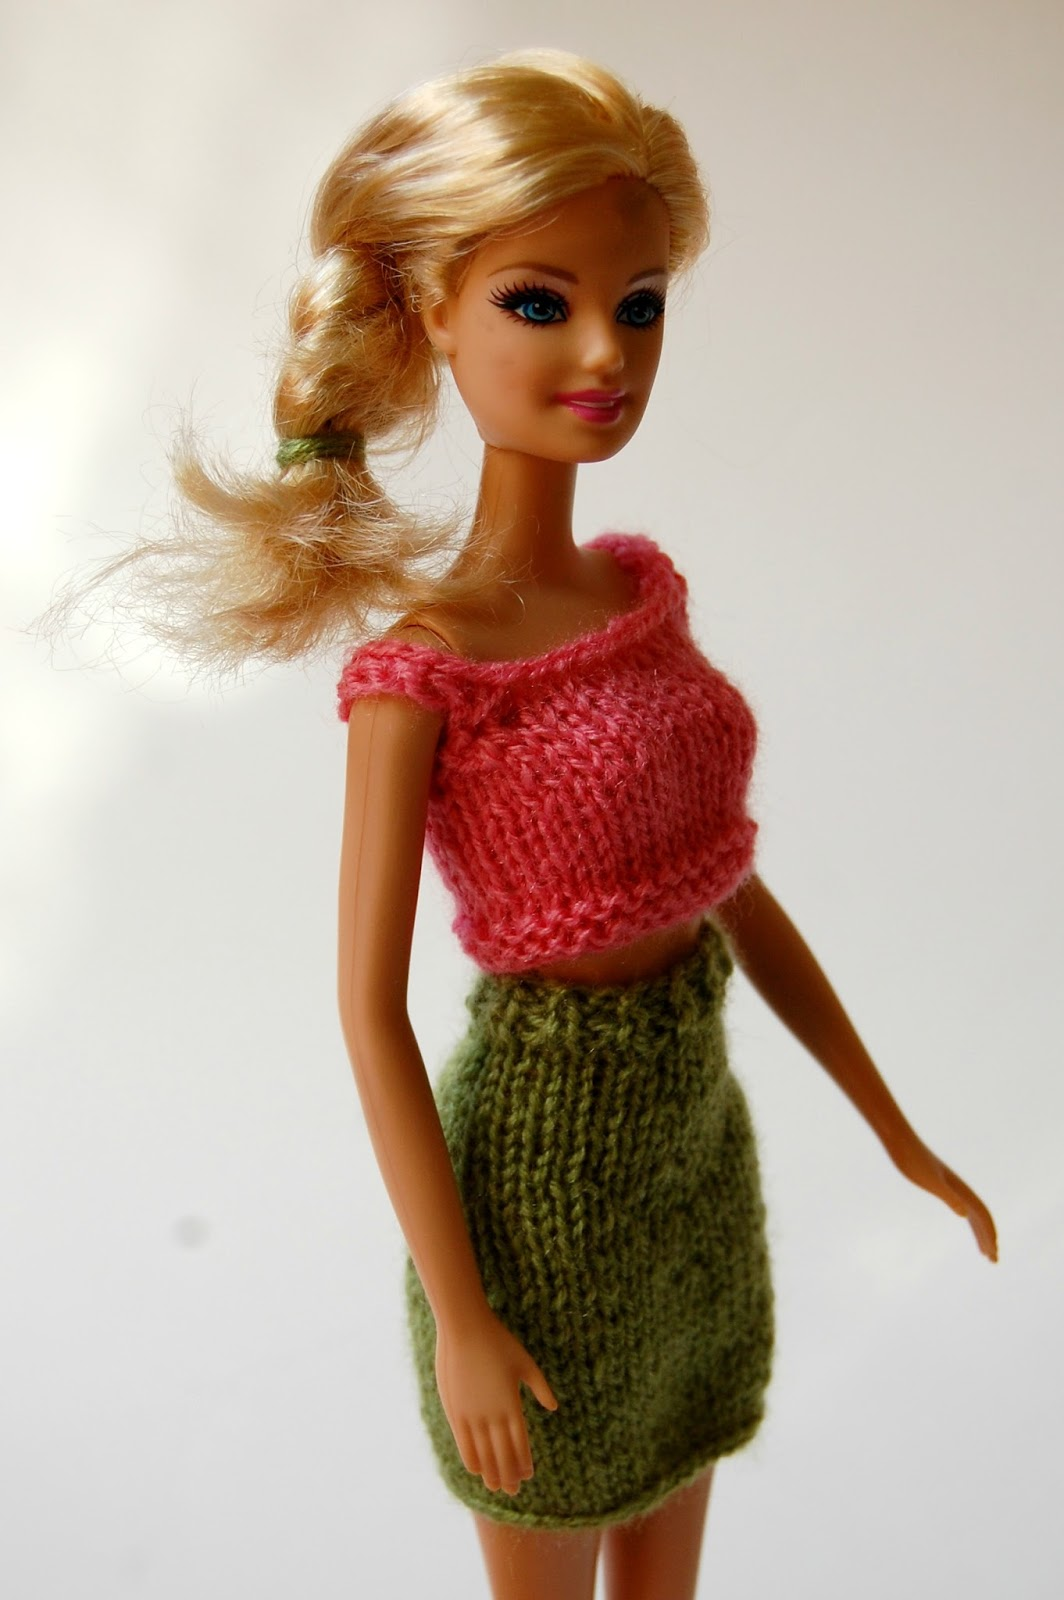 Barbie Knitting Patterns : the geeky knitter: barbie pencil skirt - free knitting pattern